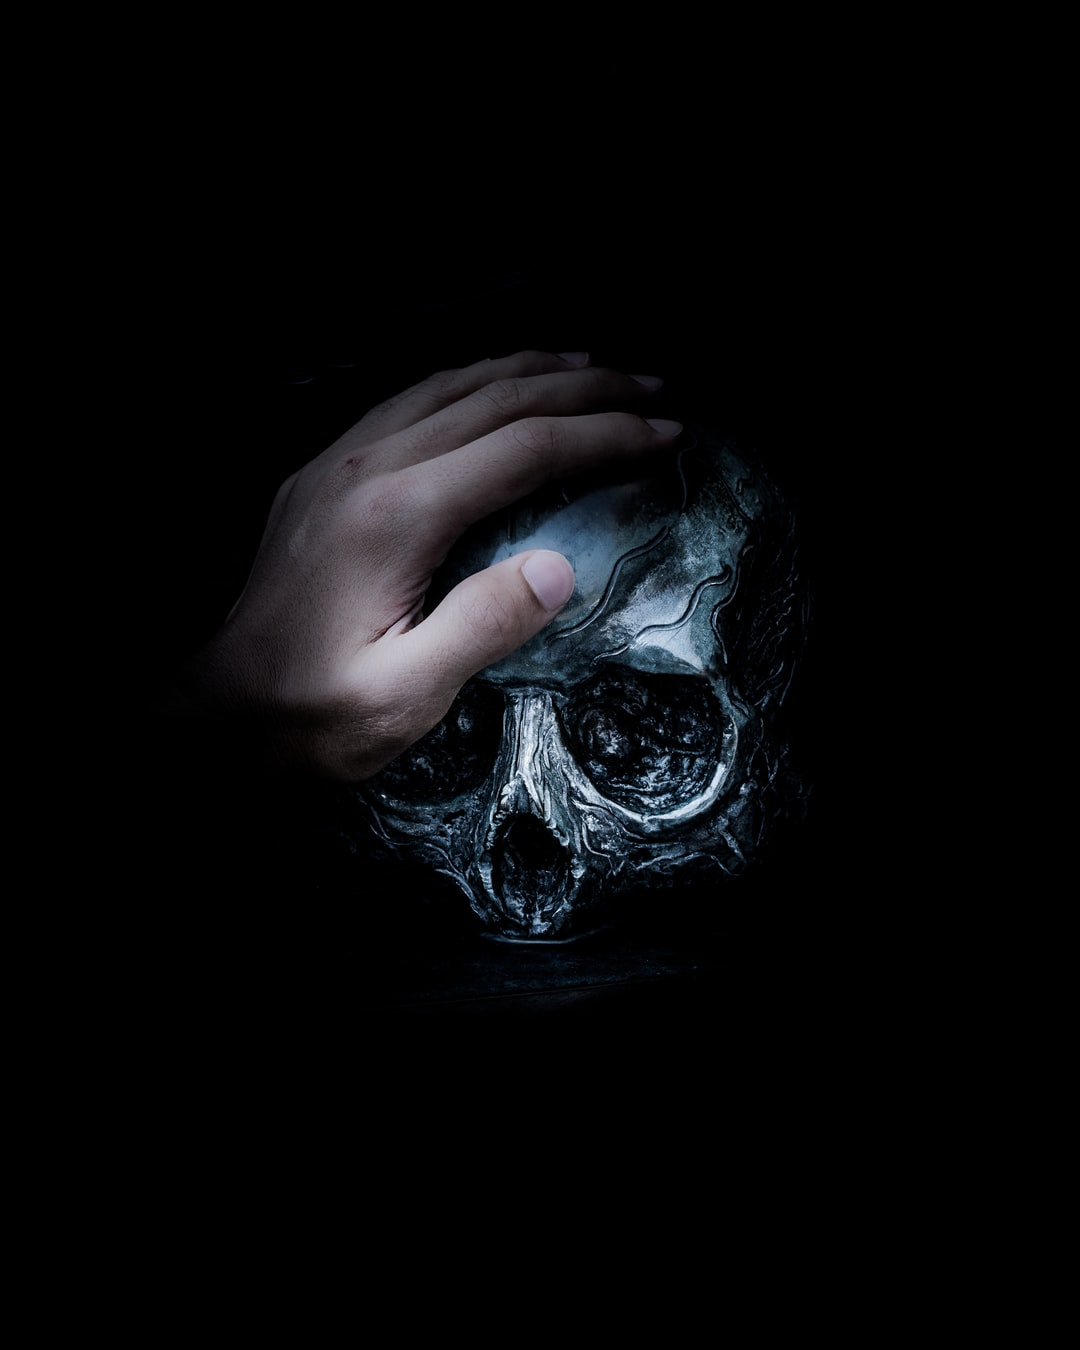 27+ Horror Pictures | Download Free Images on Unsplash